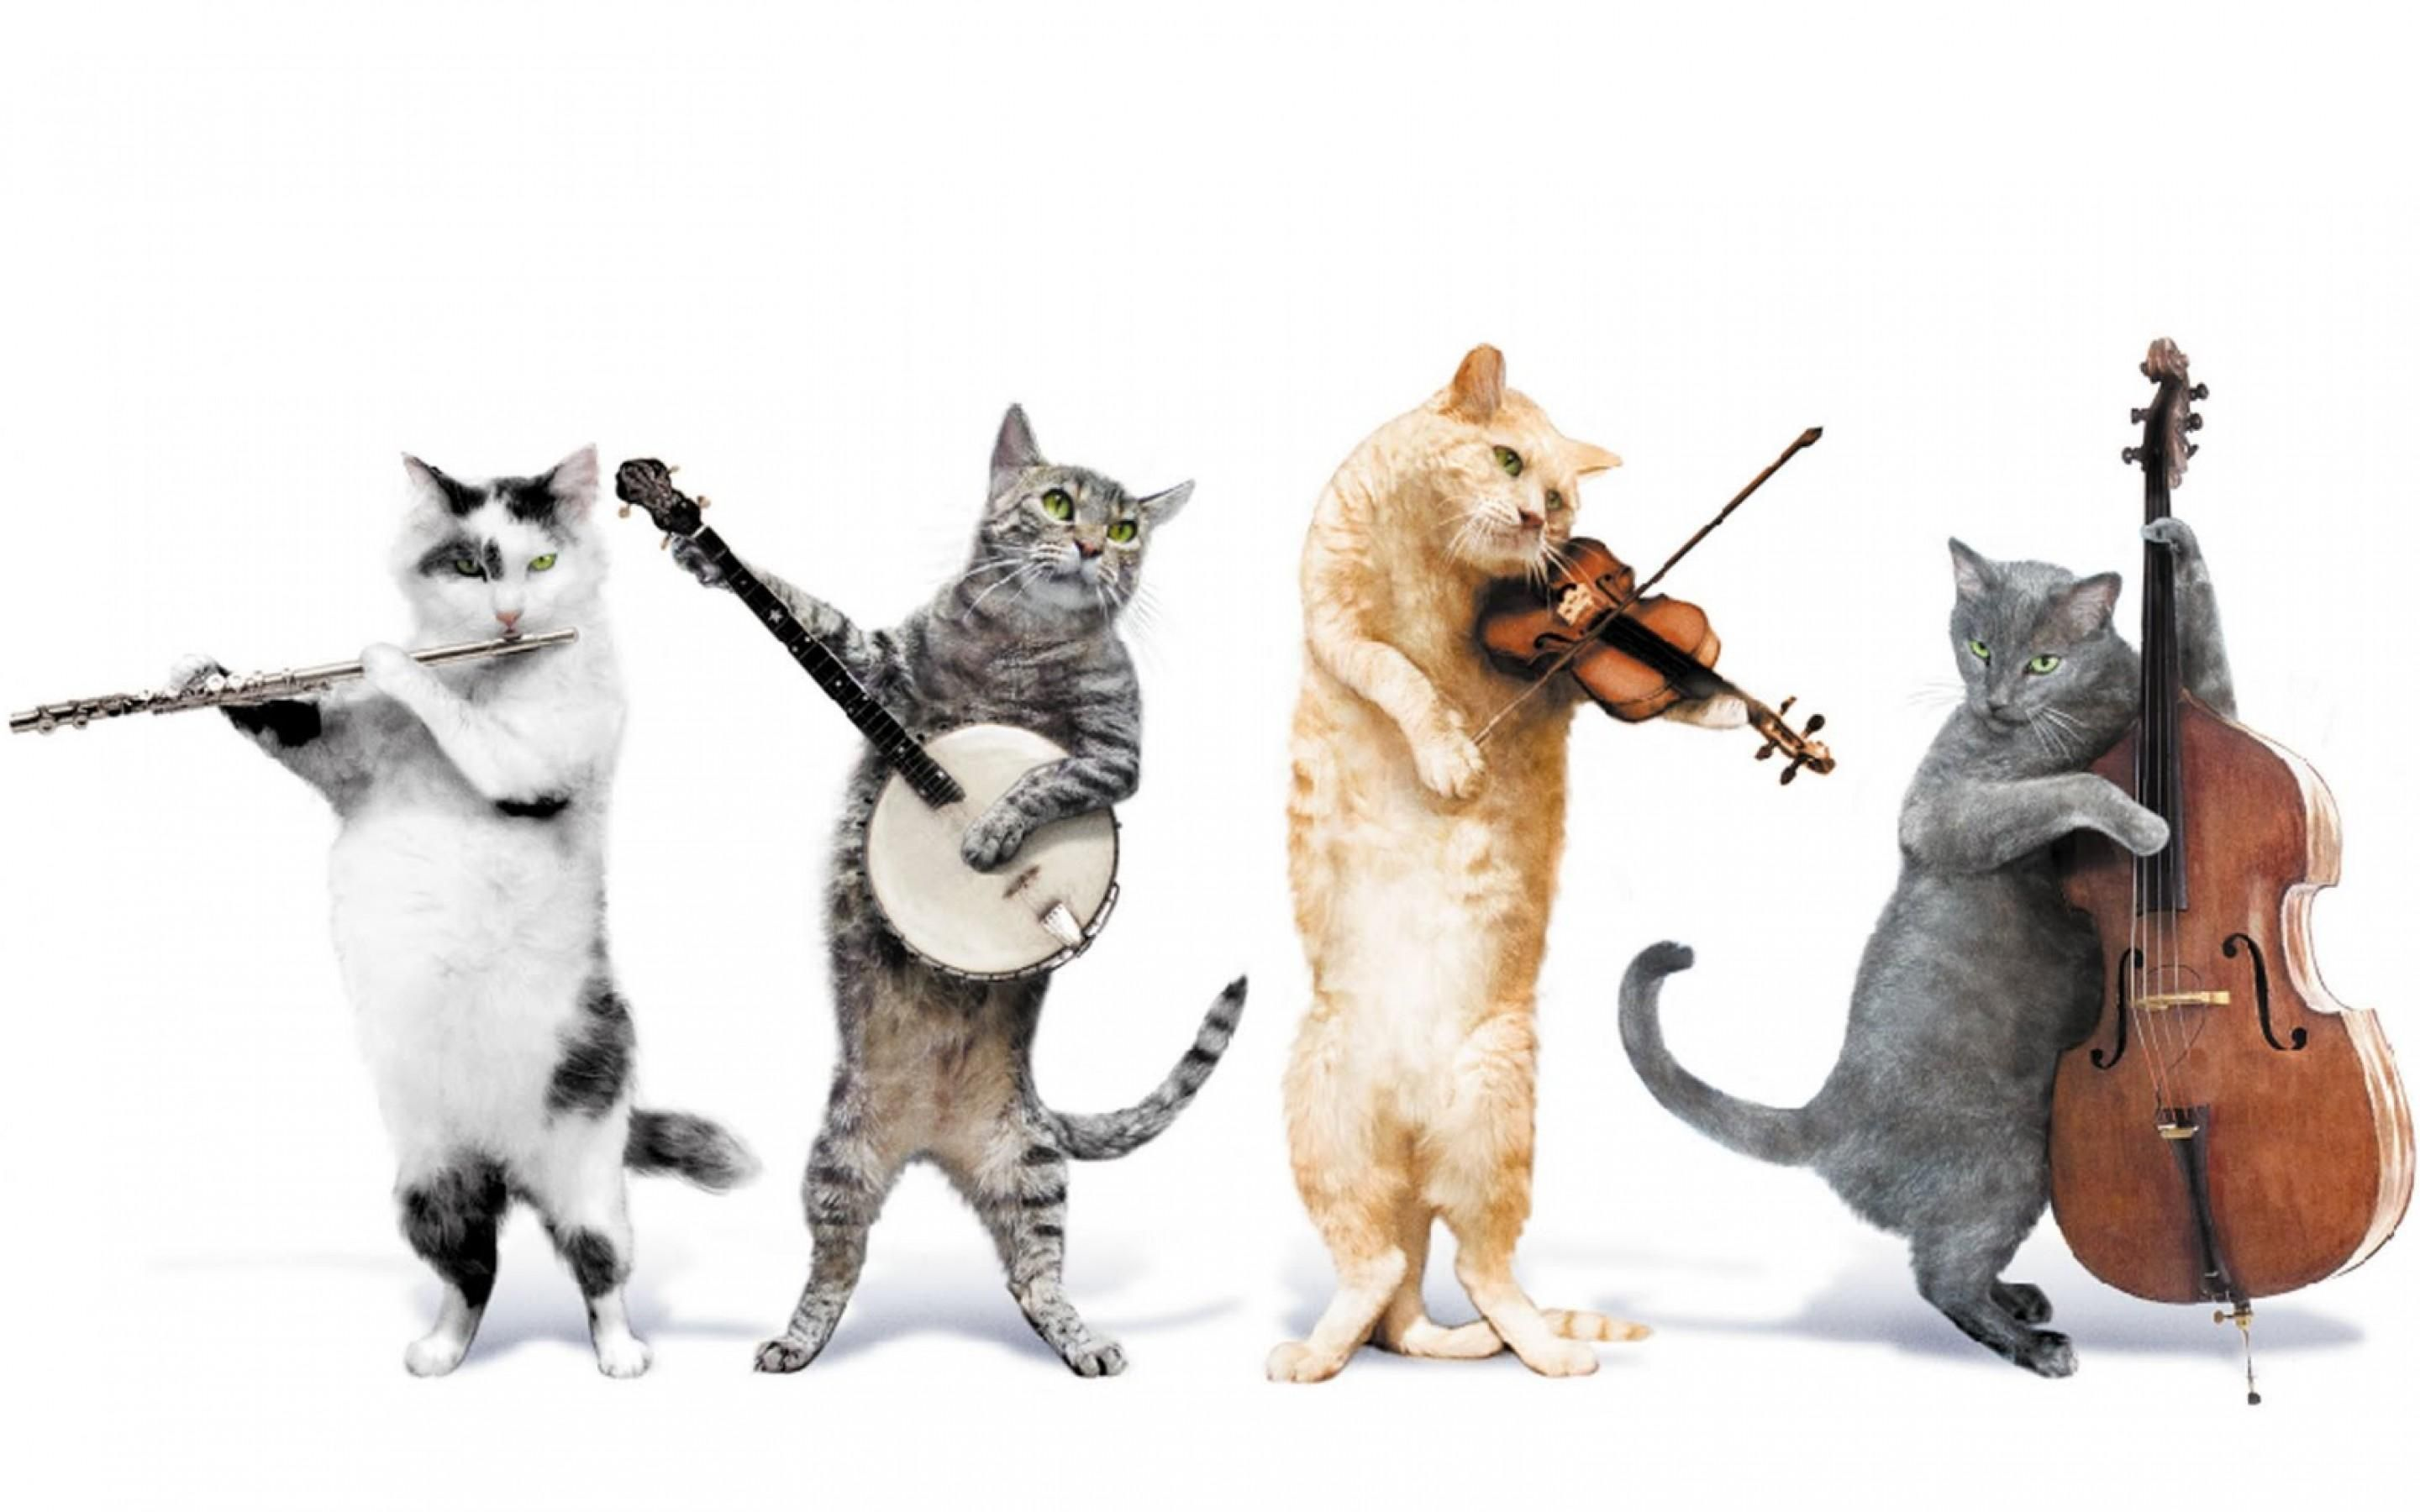 Image: Cats, playing, musical instruments, background